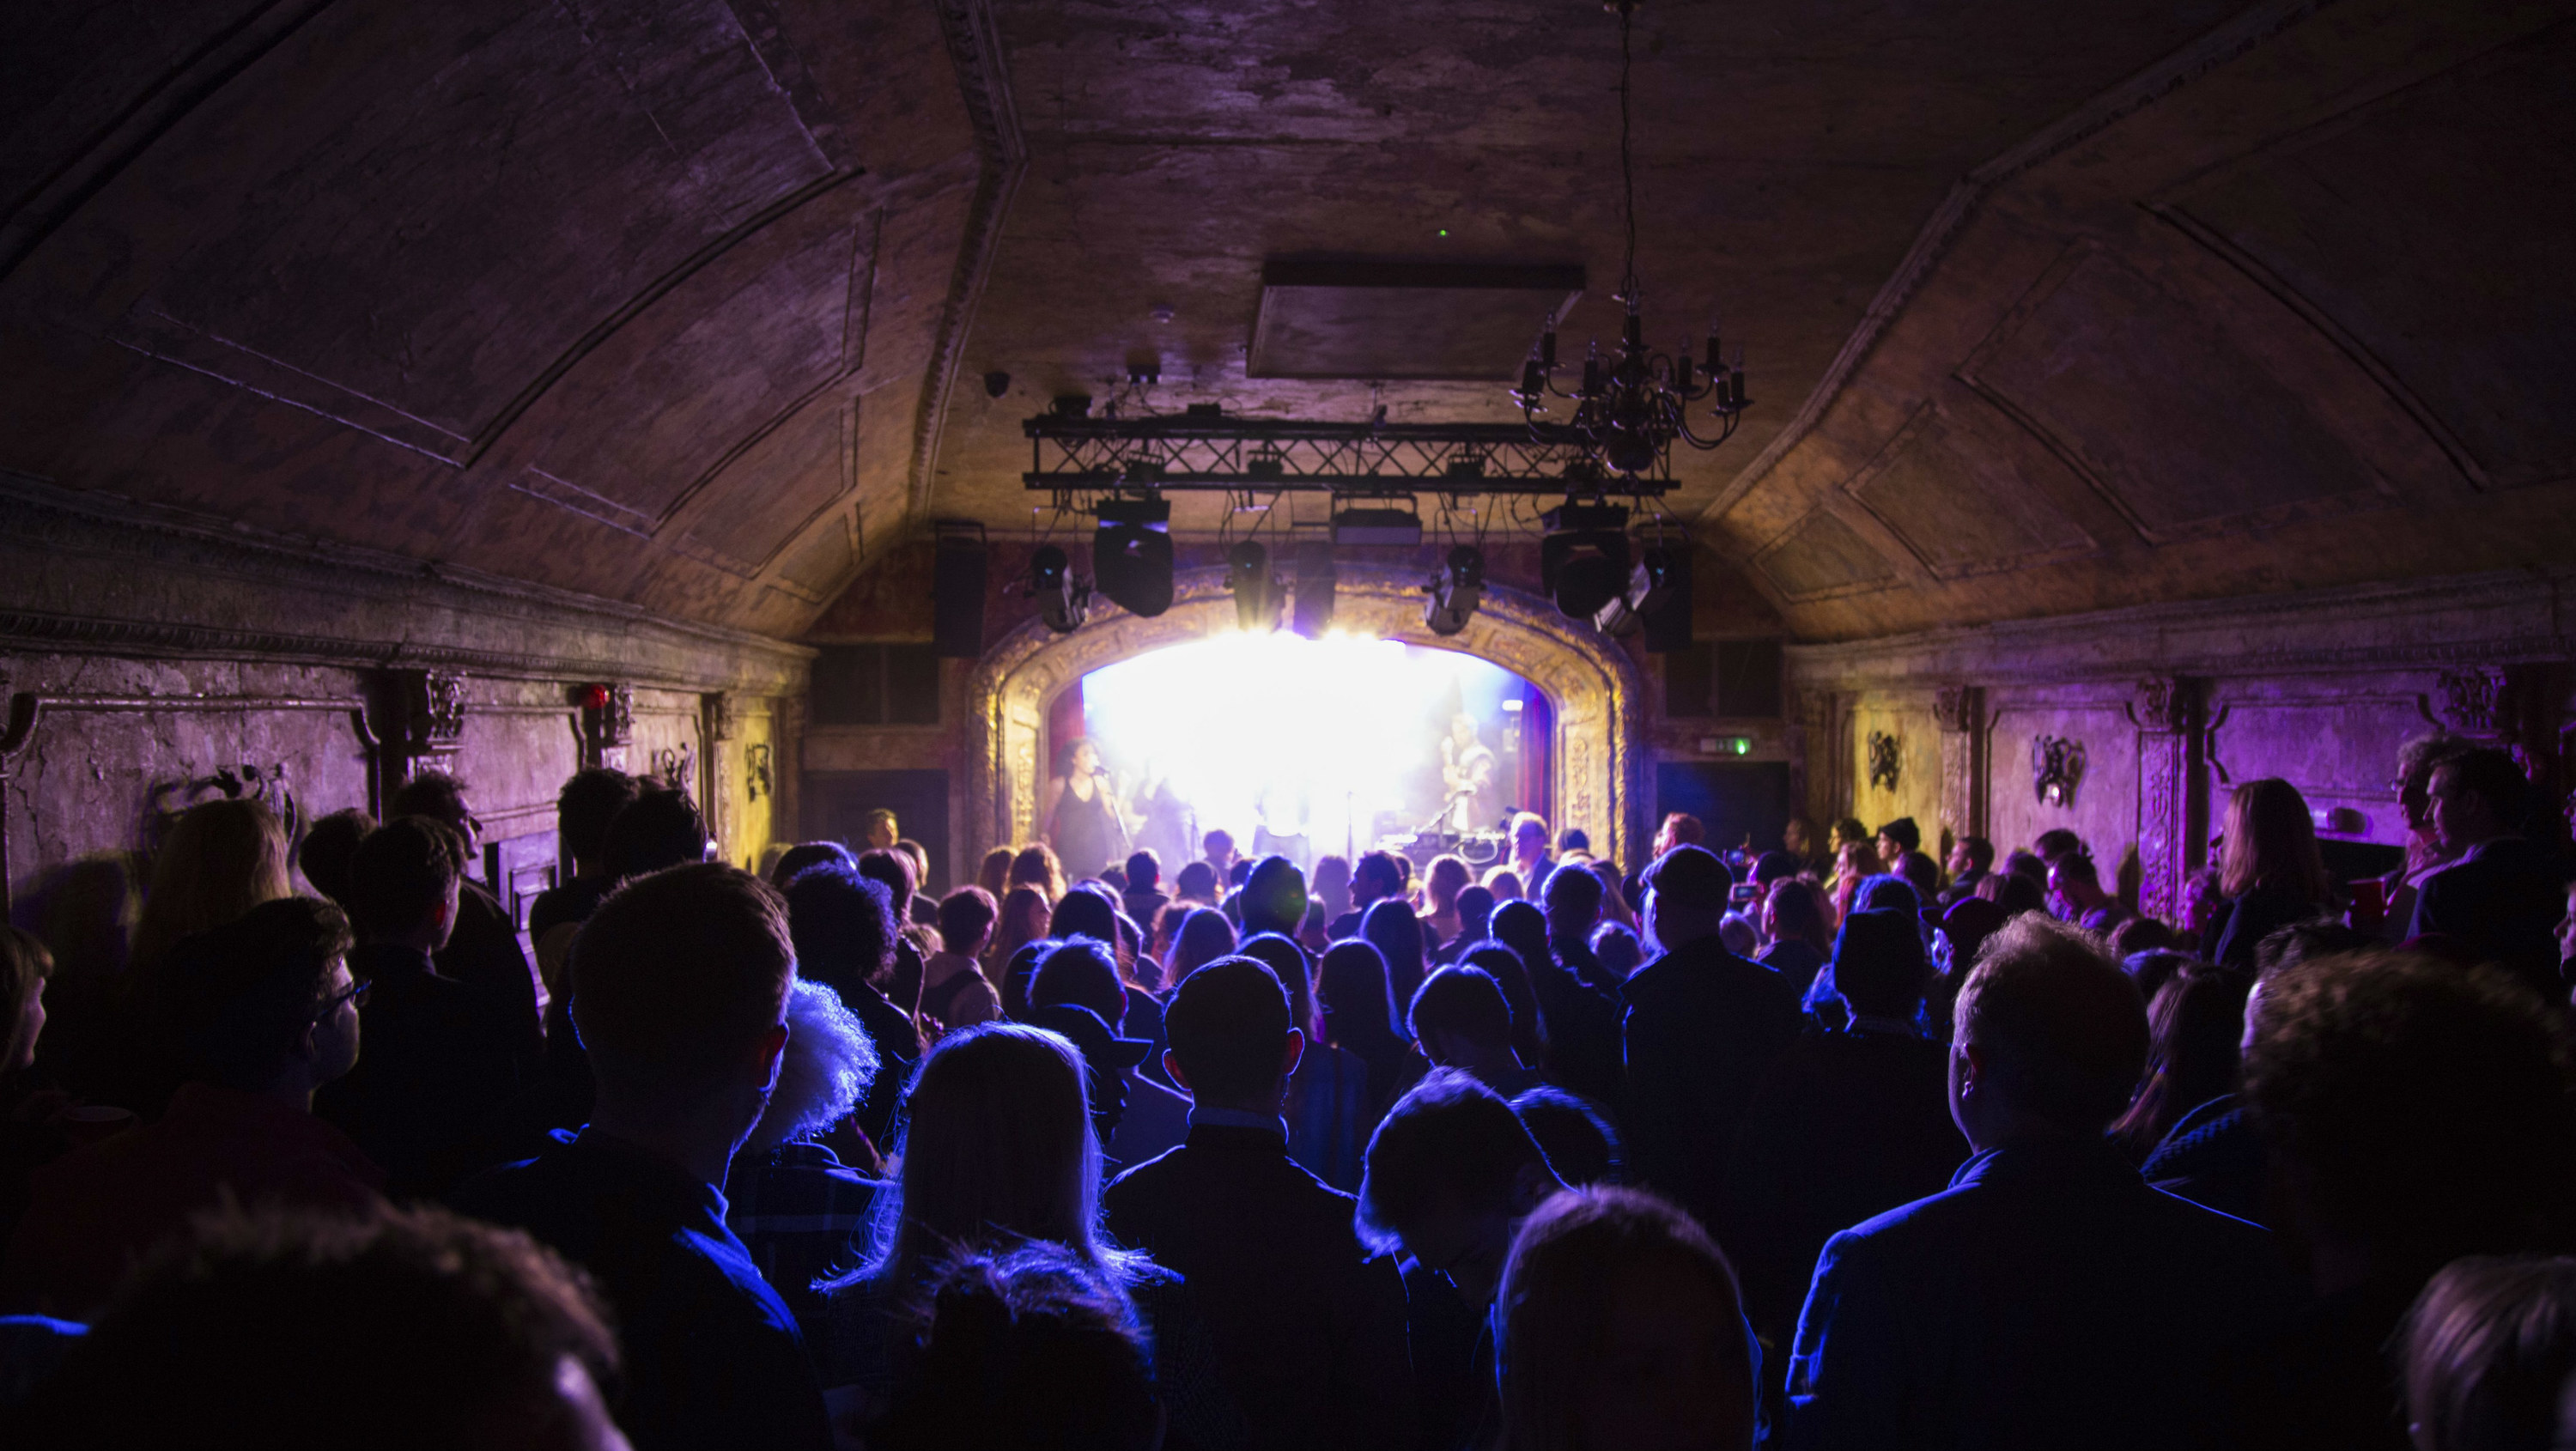 London has a new music venue!